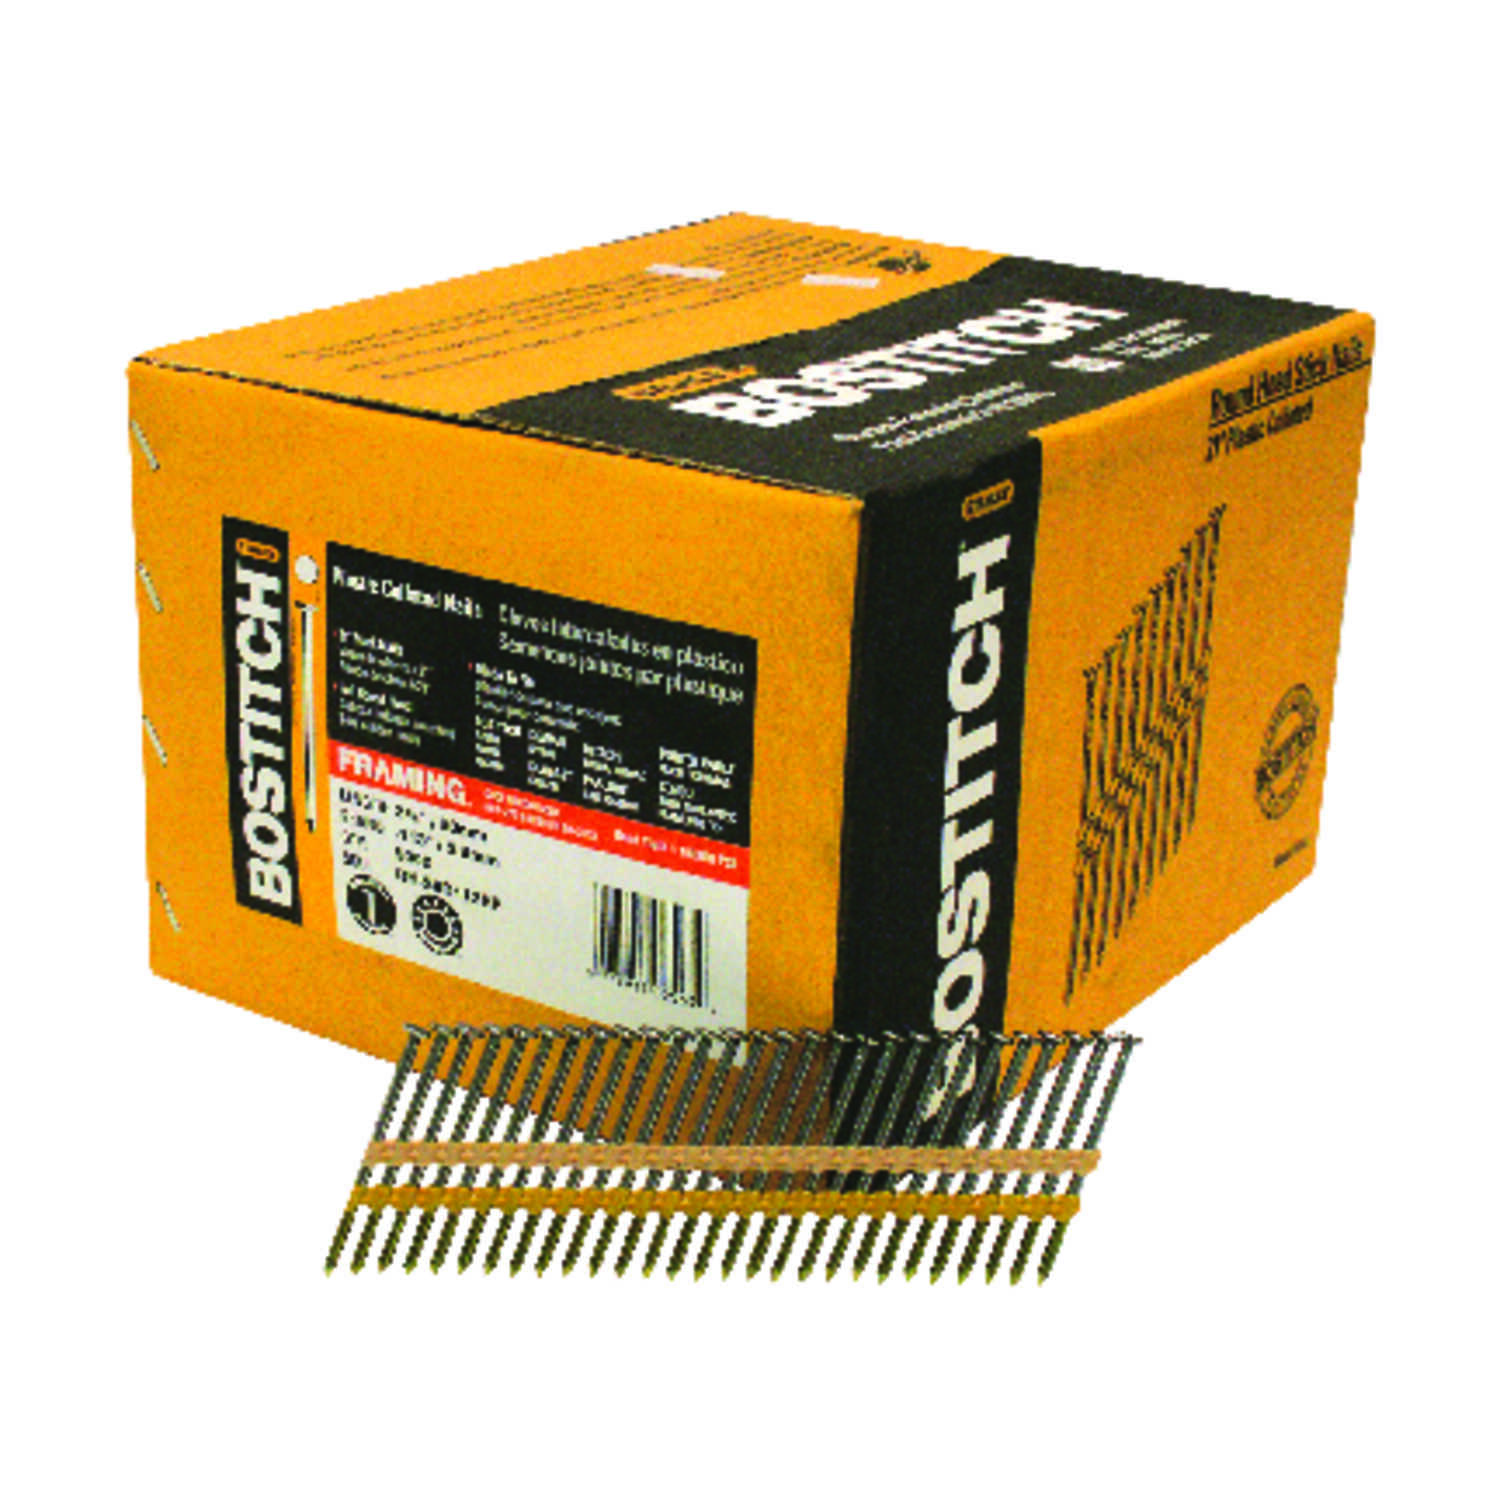 Stanley Bostitch  11 Ga. Smooth Shank  Straight Strip  Nails  2-3/8 in. L x 0.13 in. Dia. 5,000